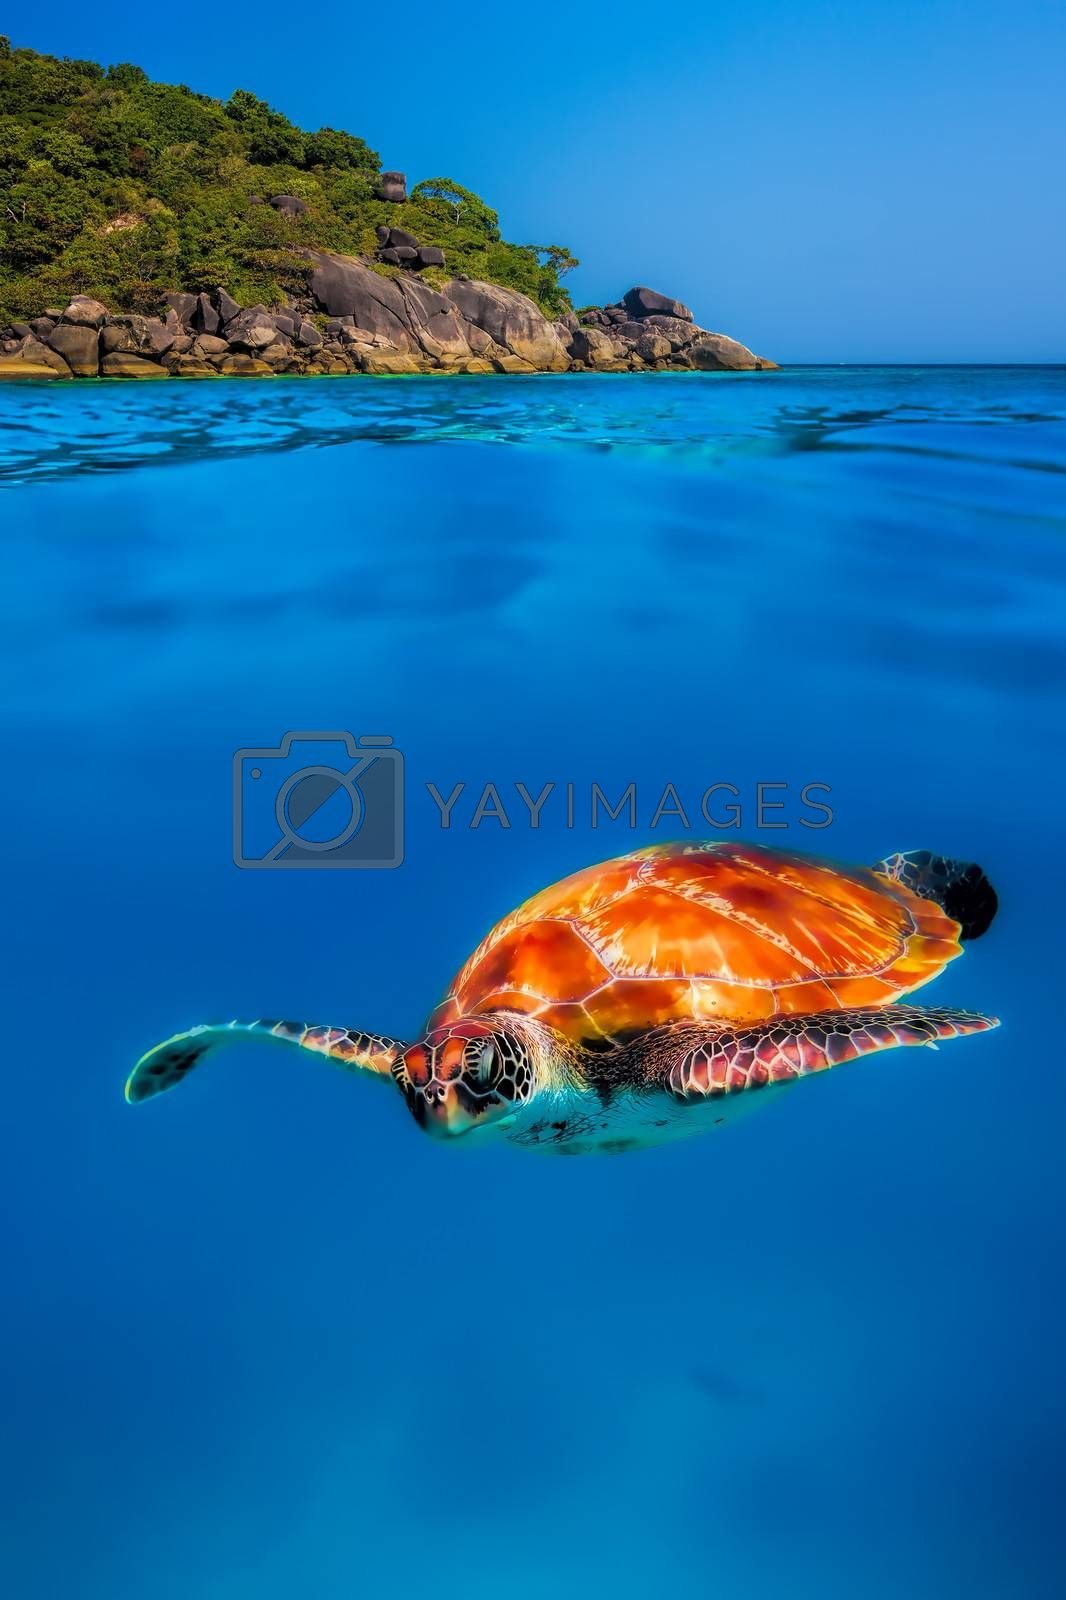 Hawksbill Turtle above and below at Similan Islands